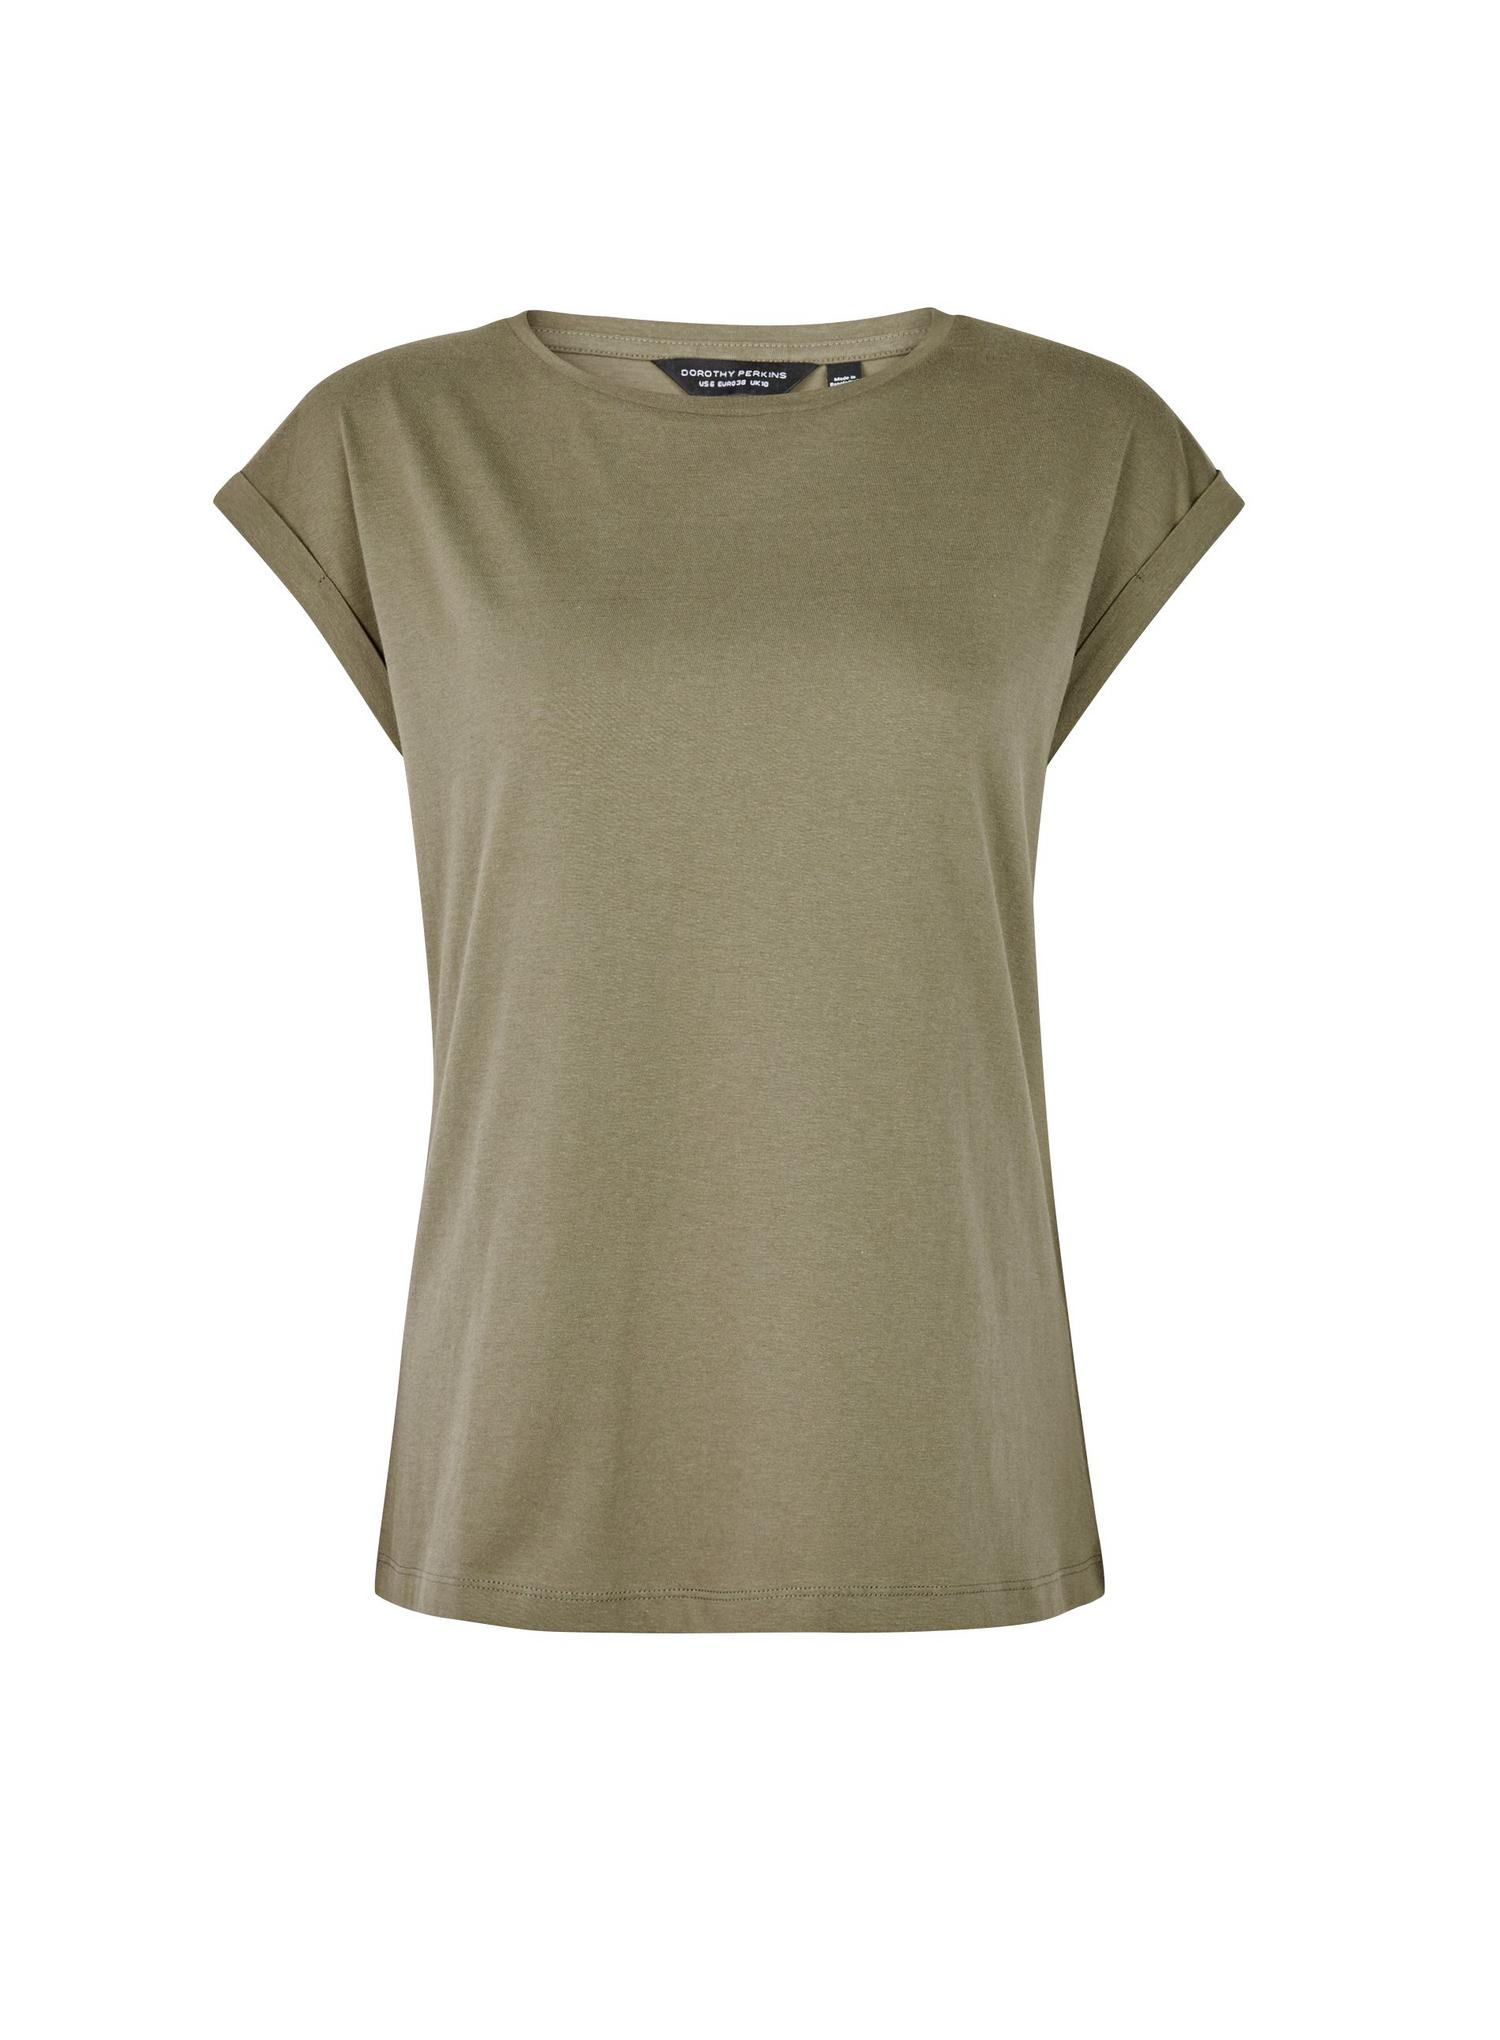 130 Khaki Organic Cotton Roll Sleeve T-Shirt image number 2